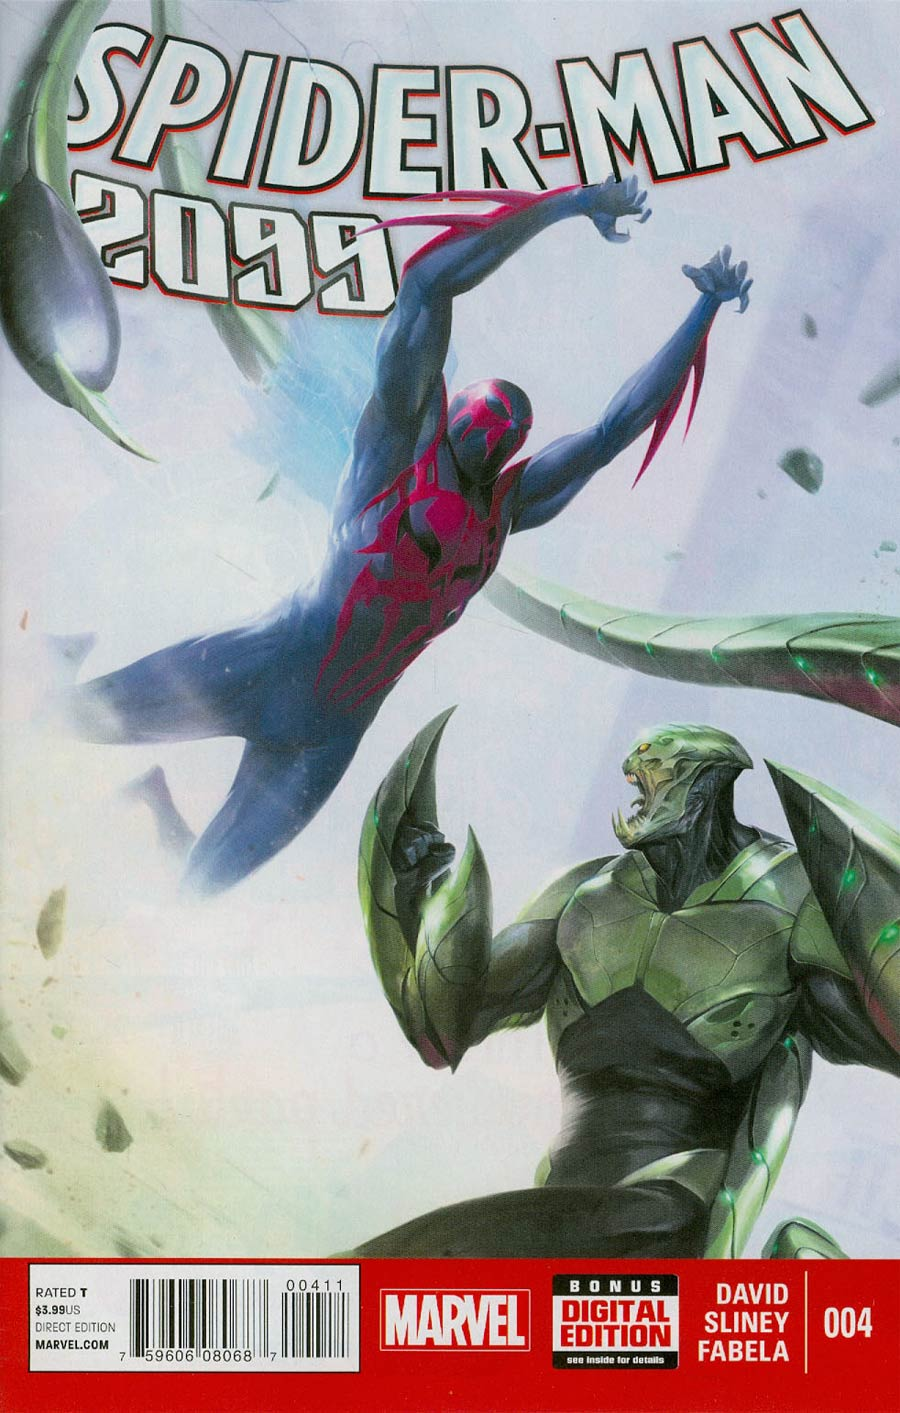 Spider-Man 2099 Vol 2 #4 Cover A Regular Francesco Mattina Cover